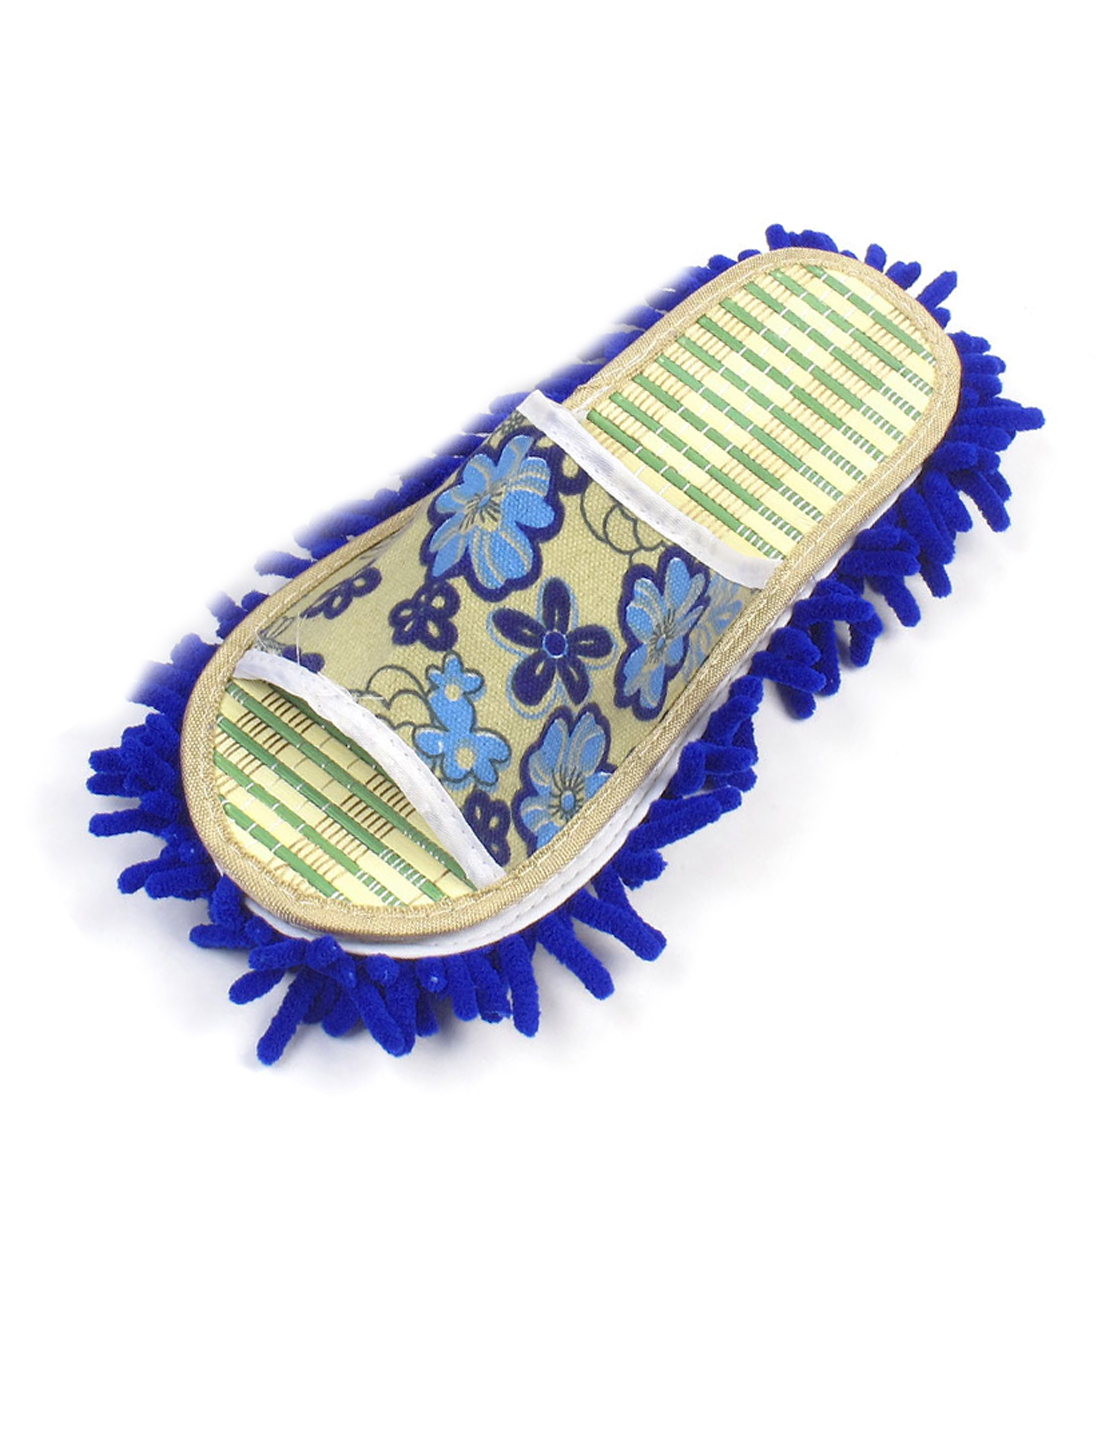 Blue Dust Floor Cleaning Mop Slippers Shoes US 10.5 for Woman